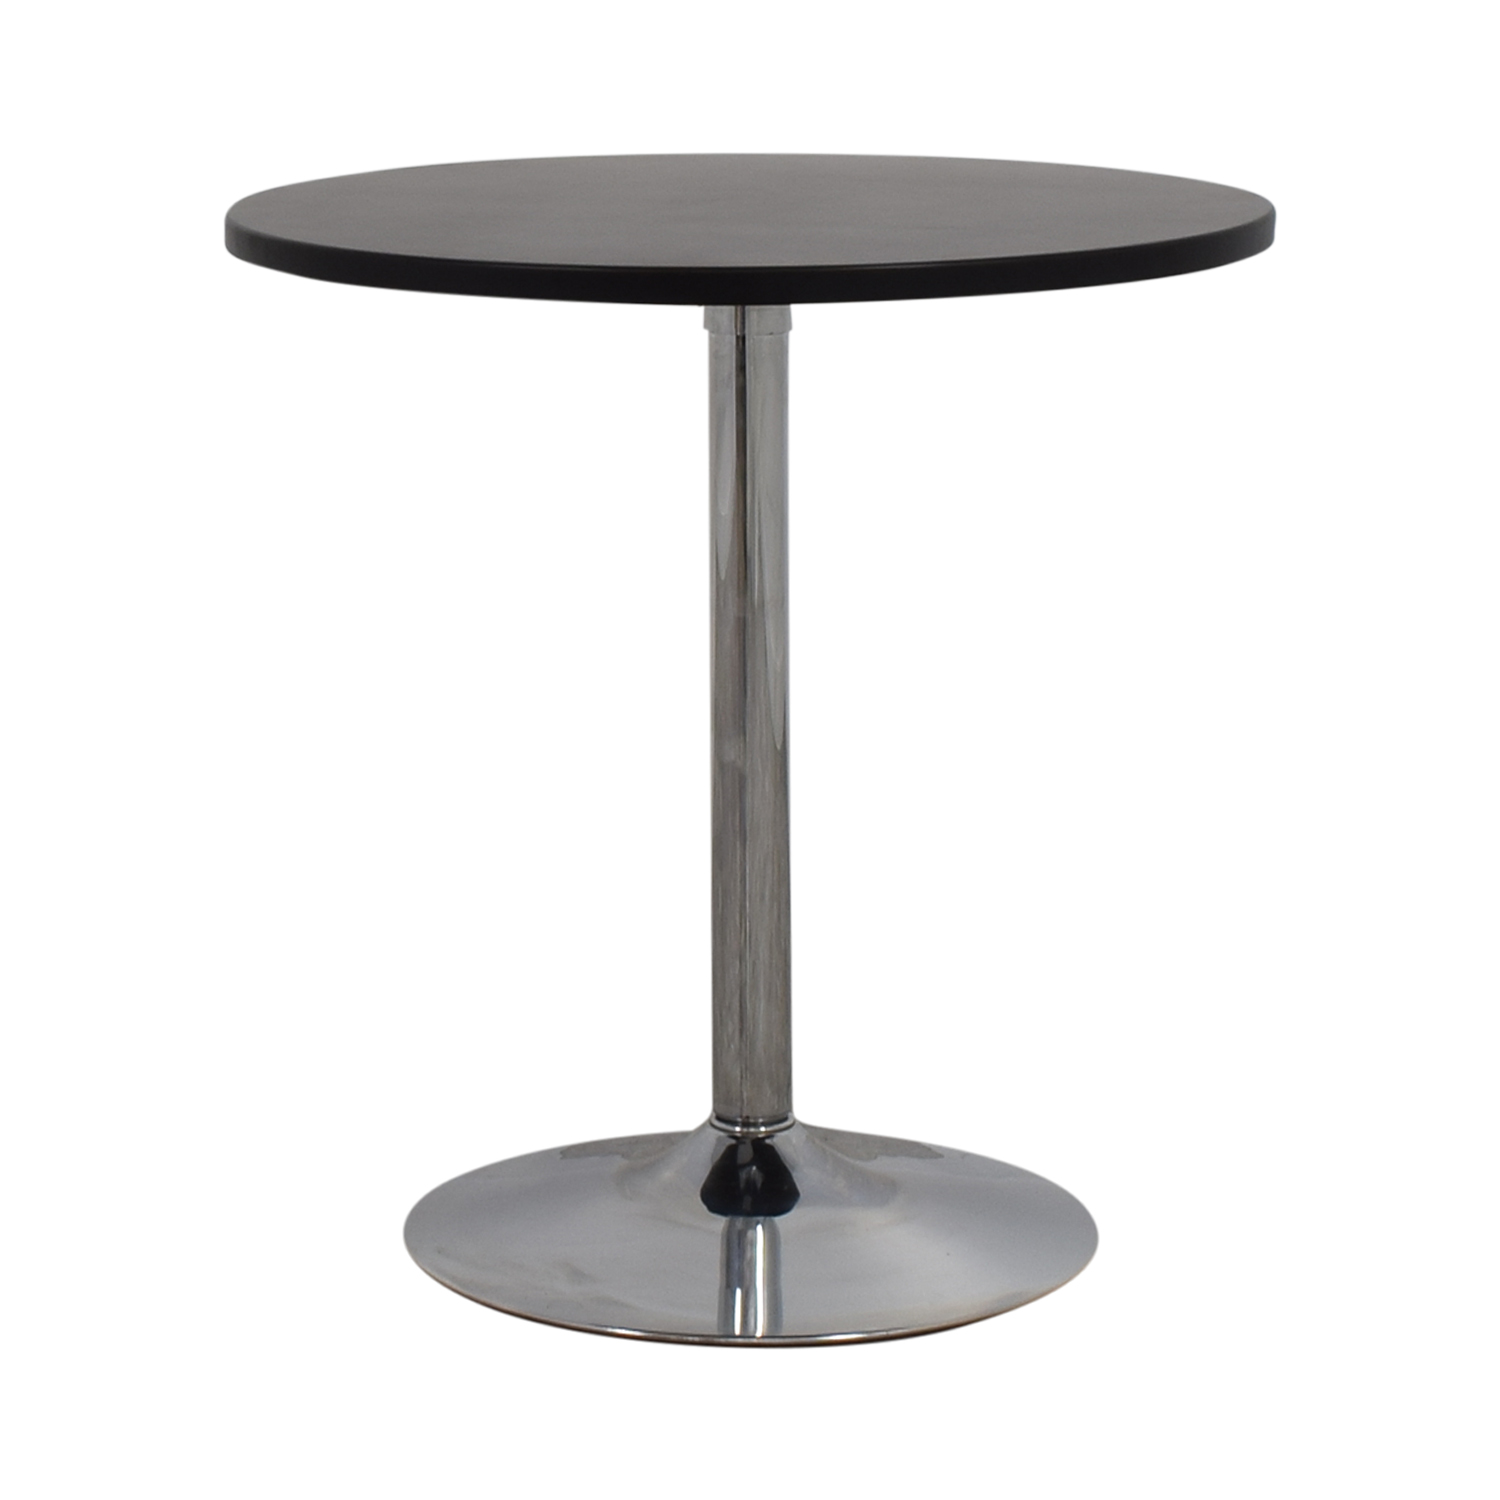 CB2 CB2 Wood and Chrome Cafe Table Black / Chrome